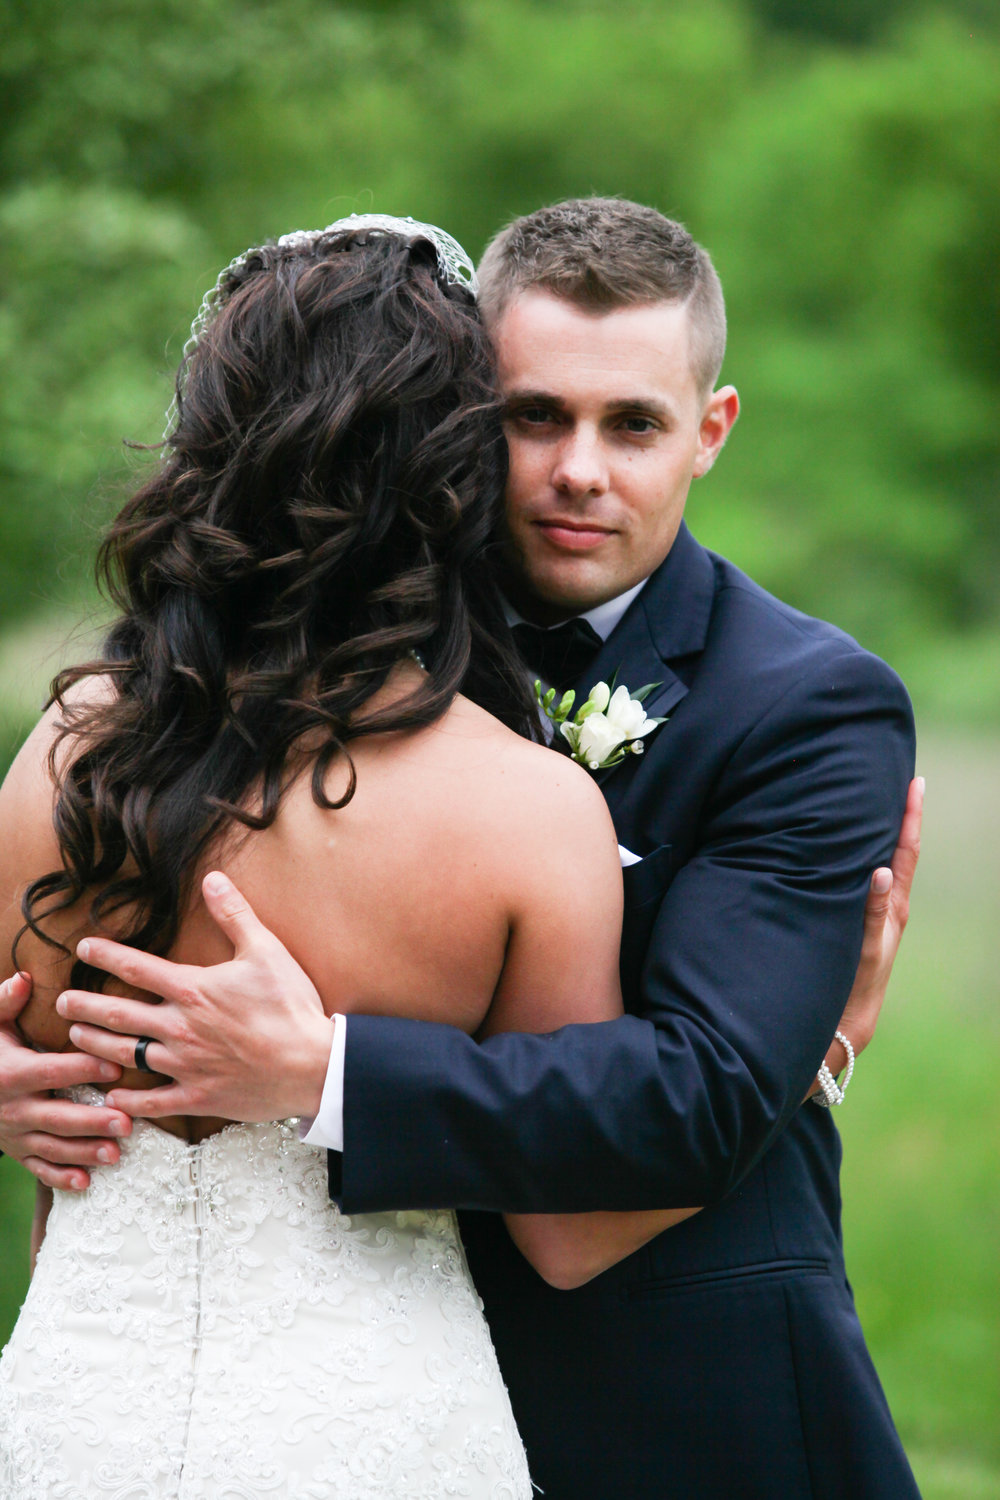 Gettin' Hitched? - Contact me to secure your date!